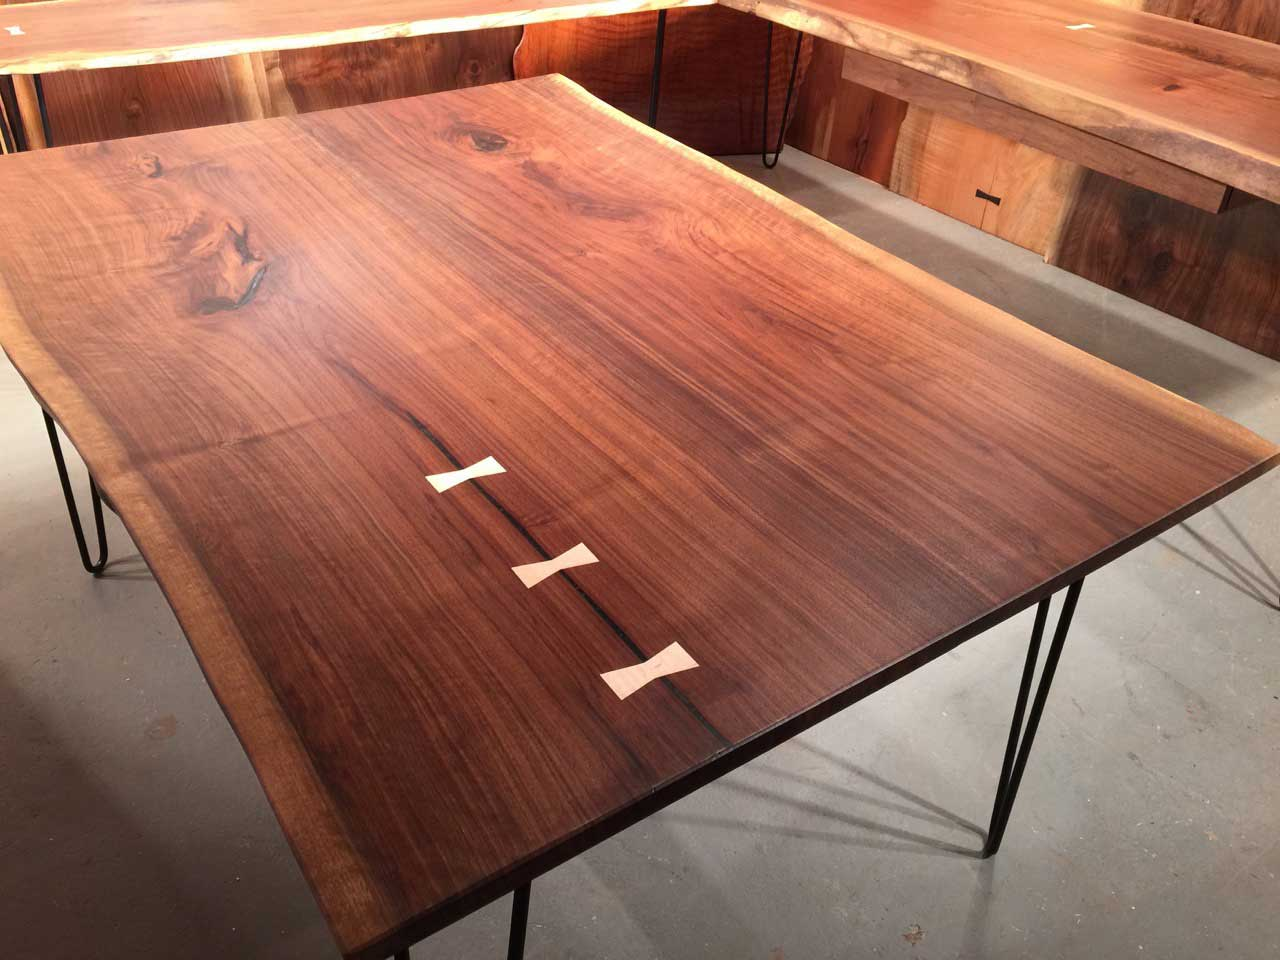 Wood Slab Dining Tables | Dumond's Custom Furniture